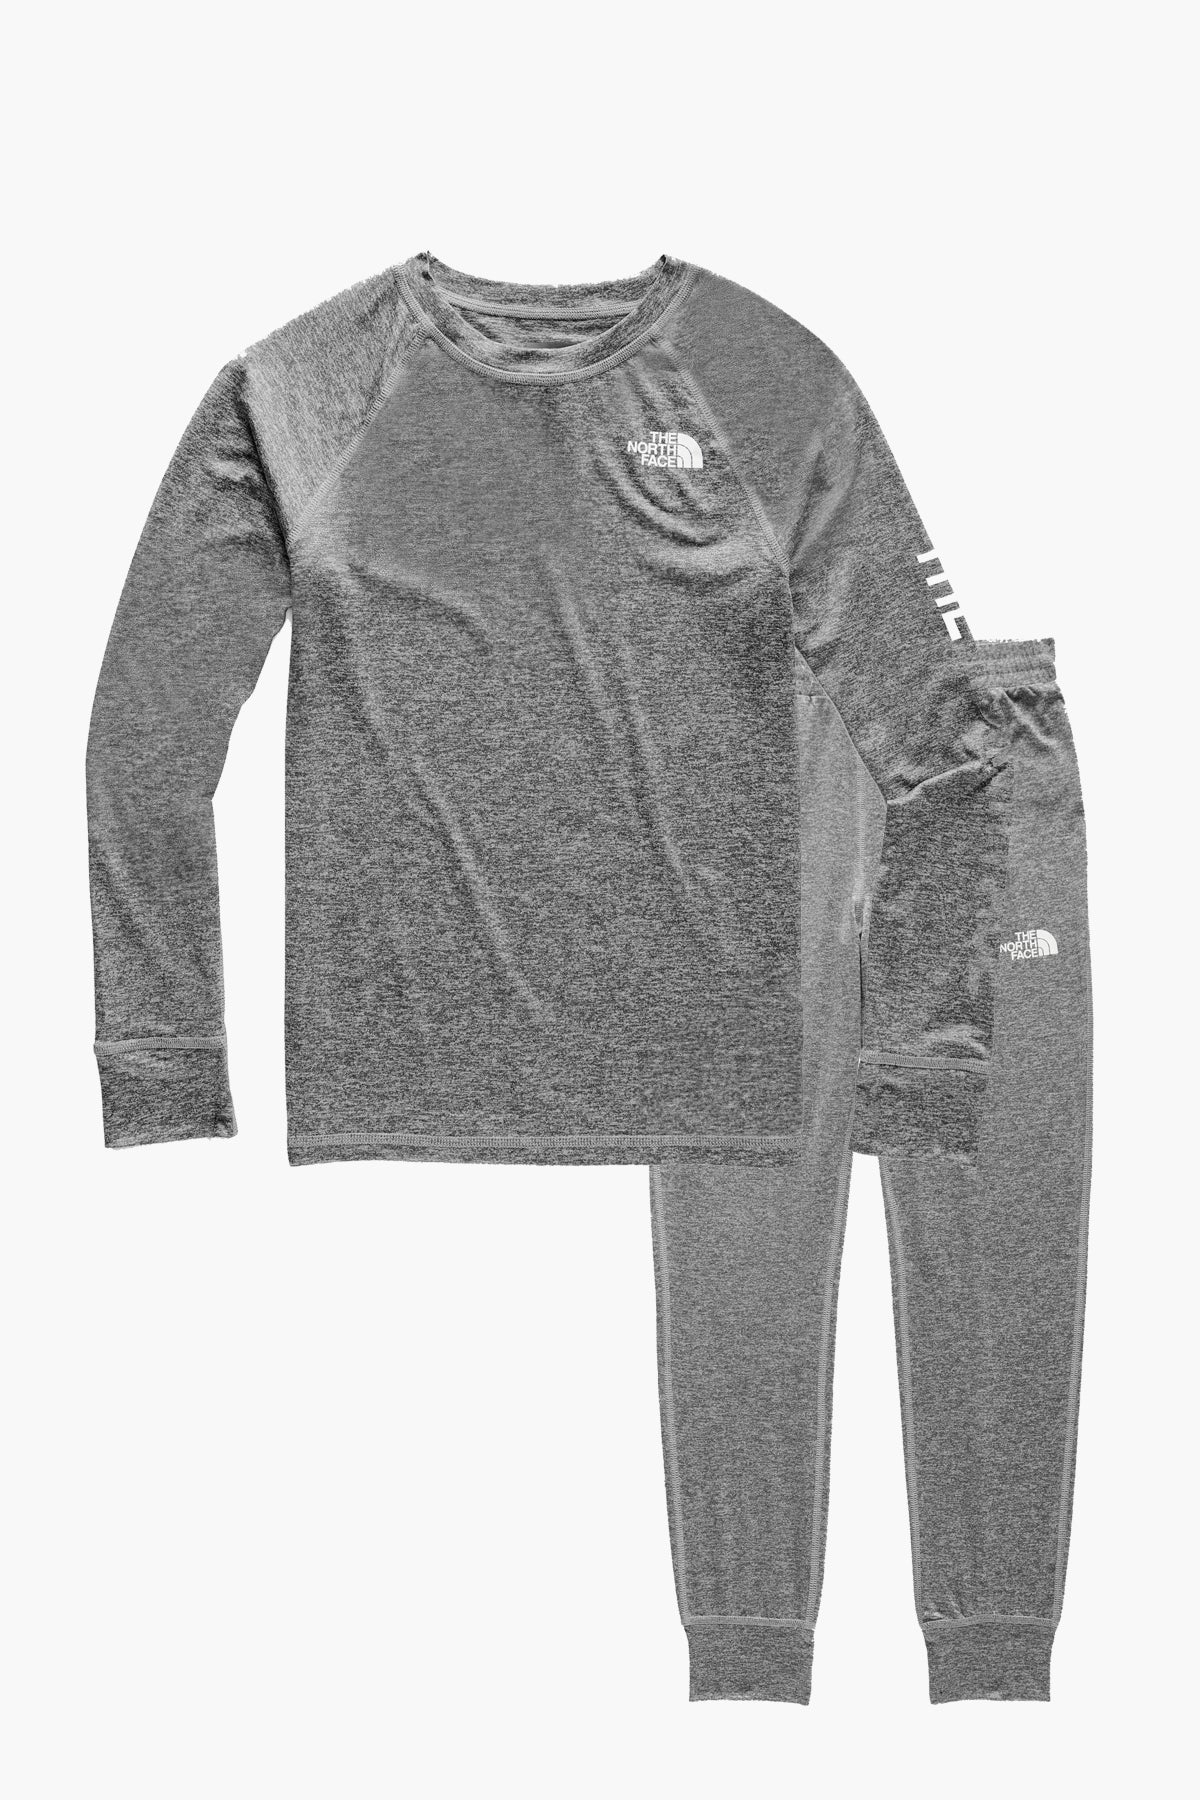 87f625528 The North Face Youth Warm Crew Baselayer Set - Heather Grey